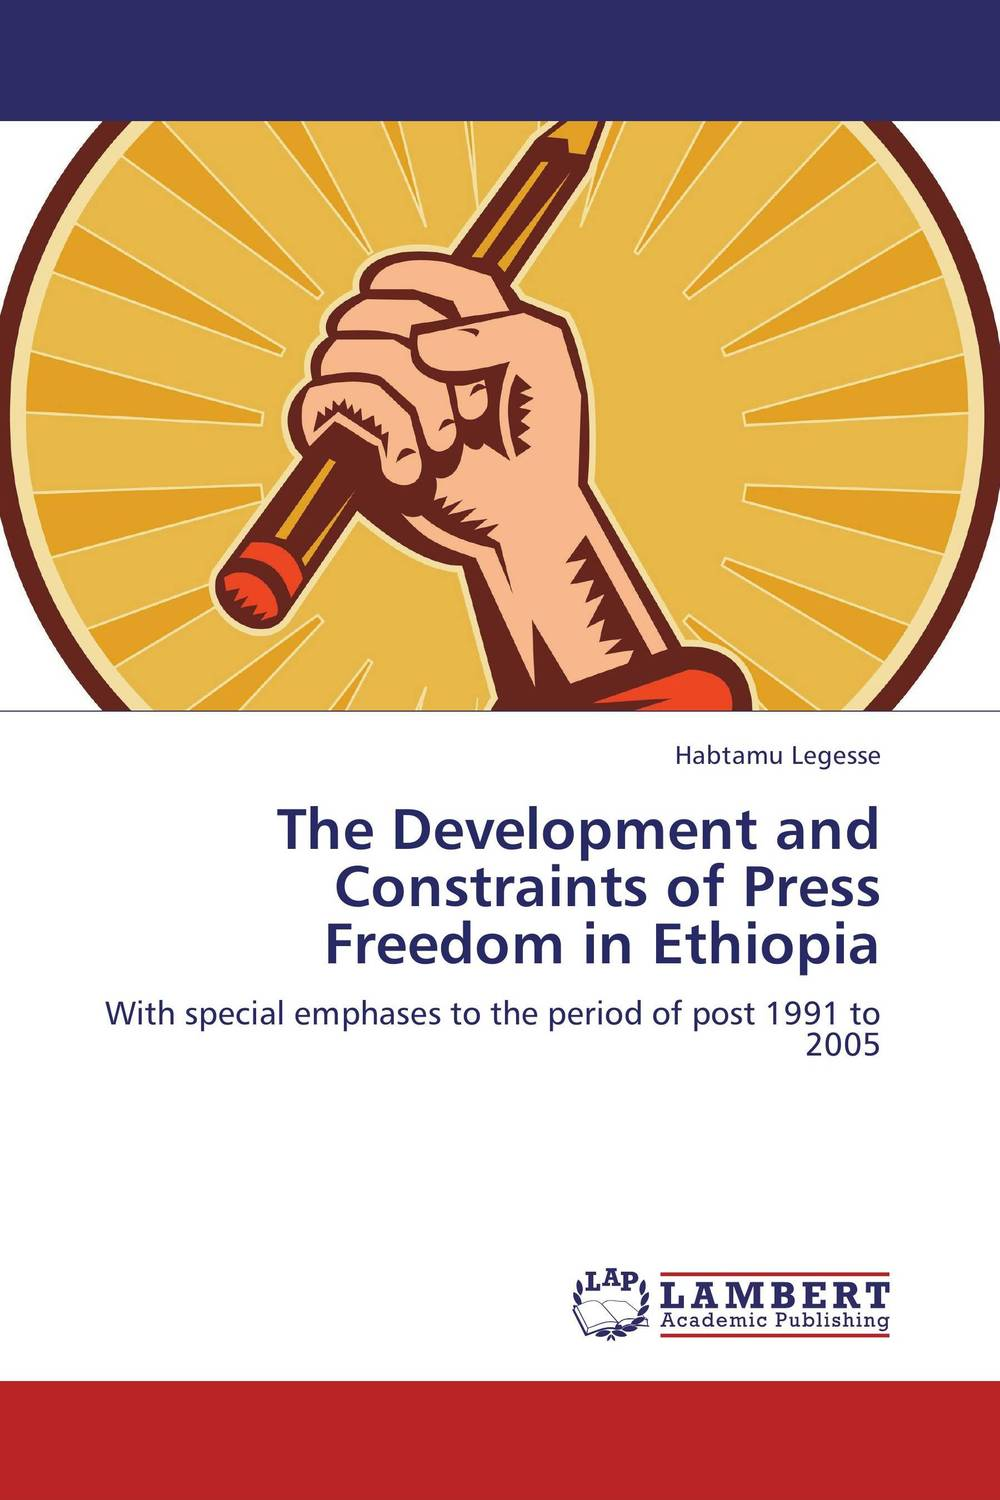 The Development and Constraints of Press Freedom in Ethiopia skylark точечный светильник elvan sd 8164 wh gr